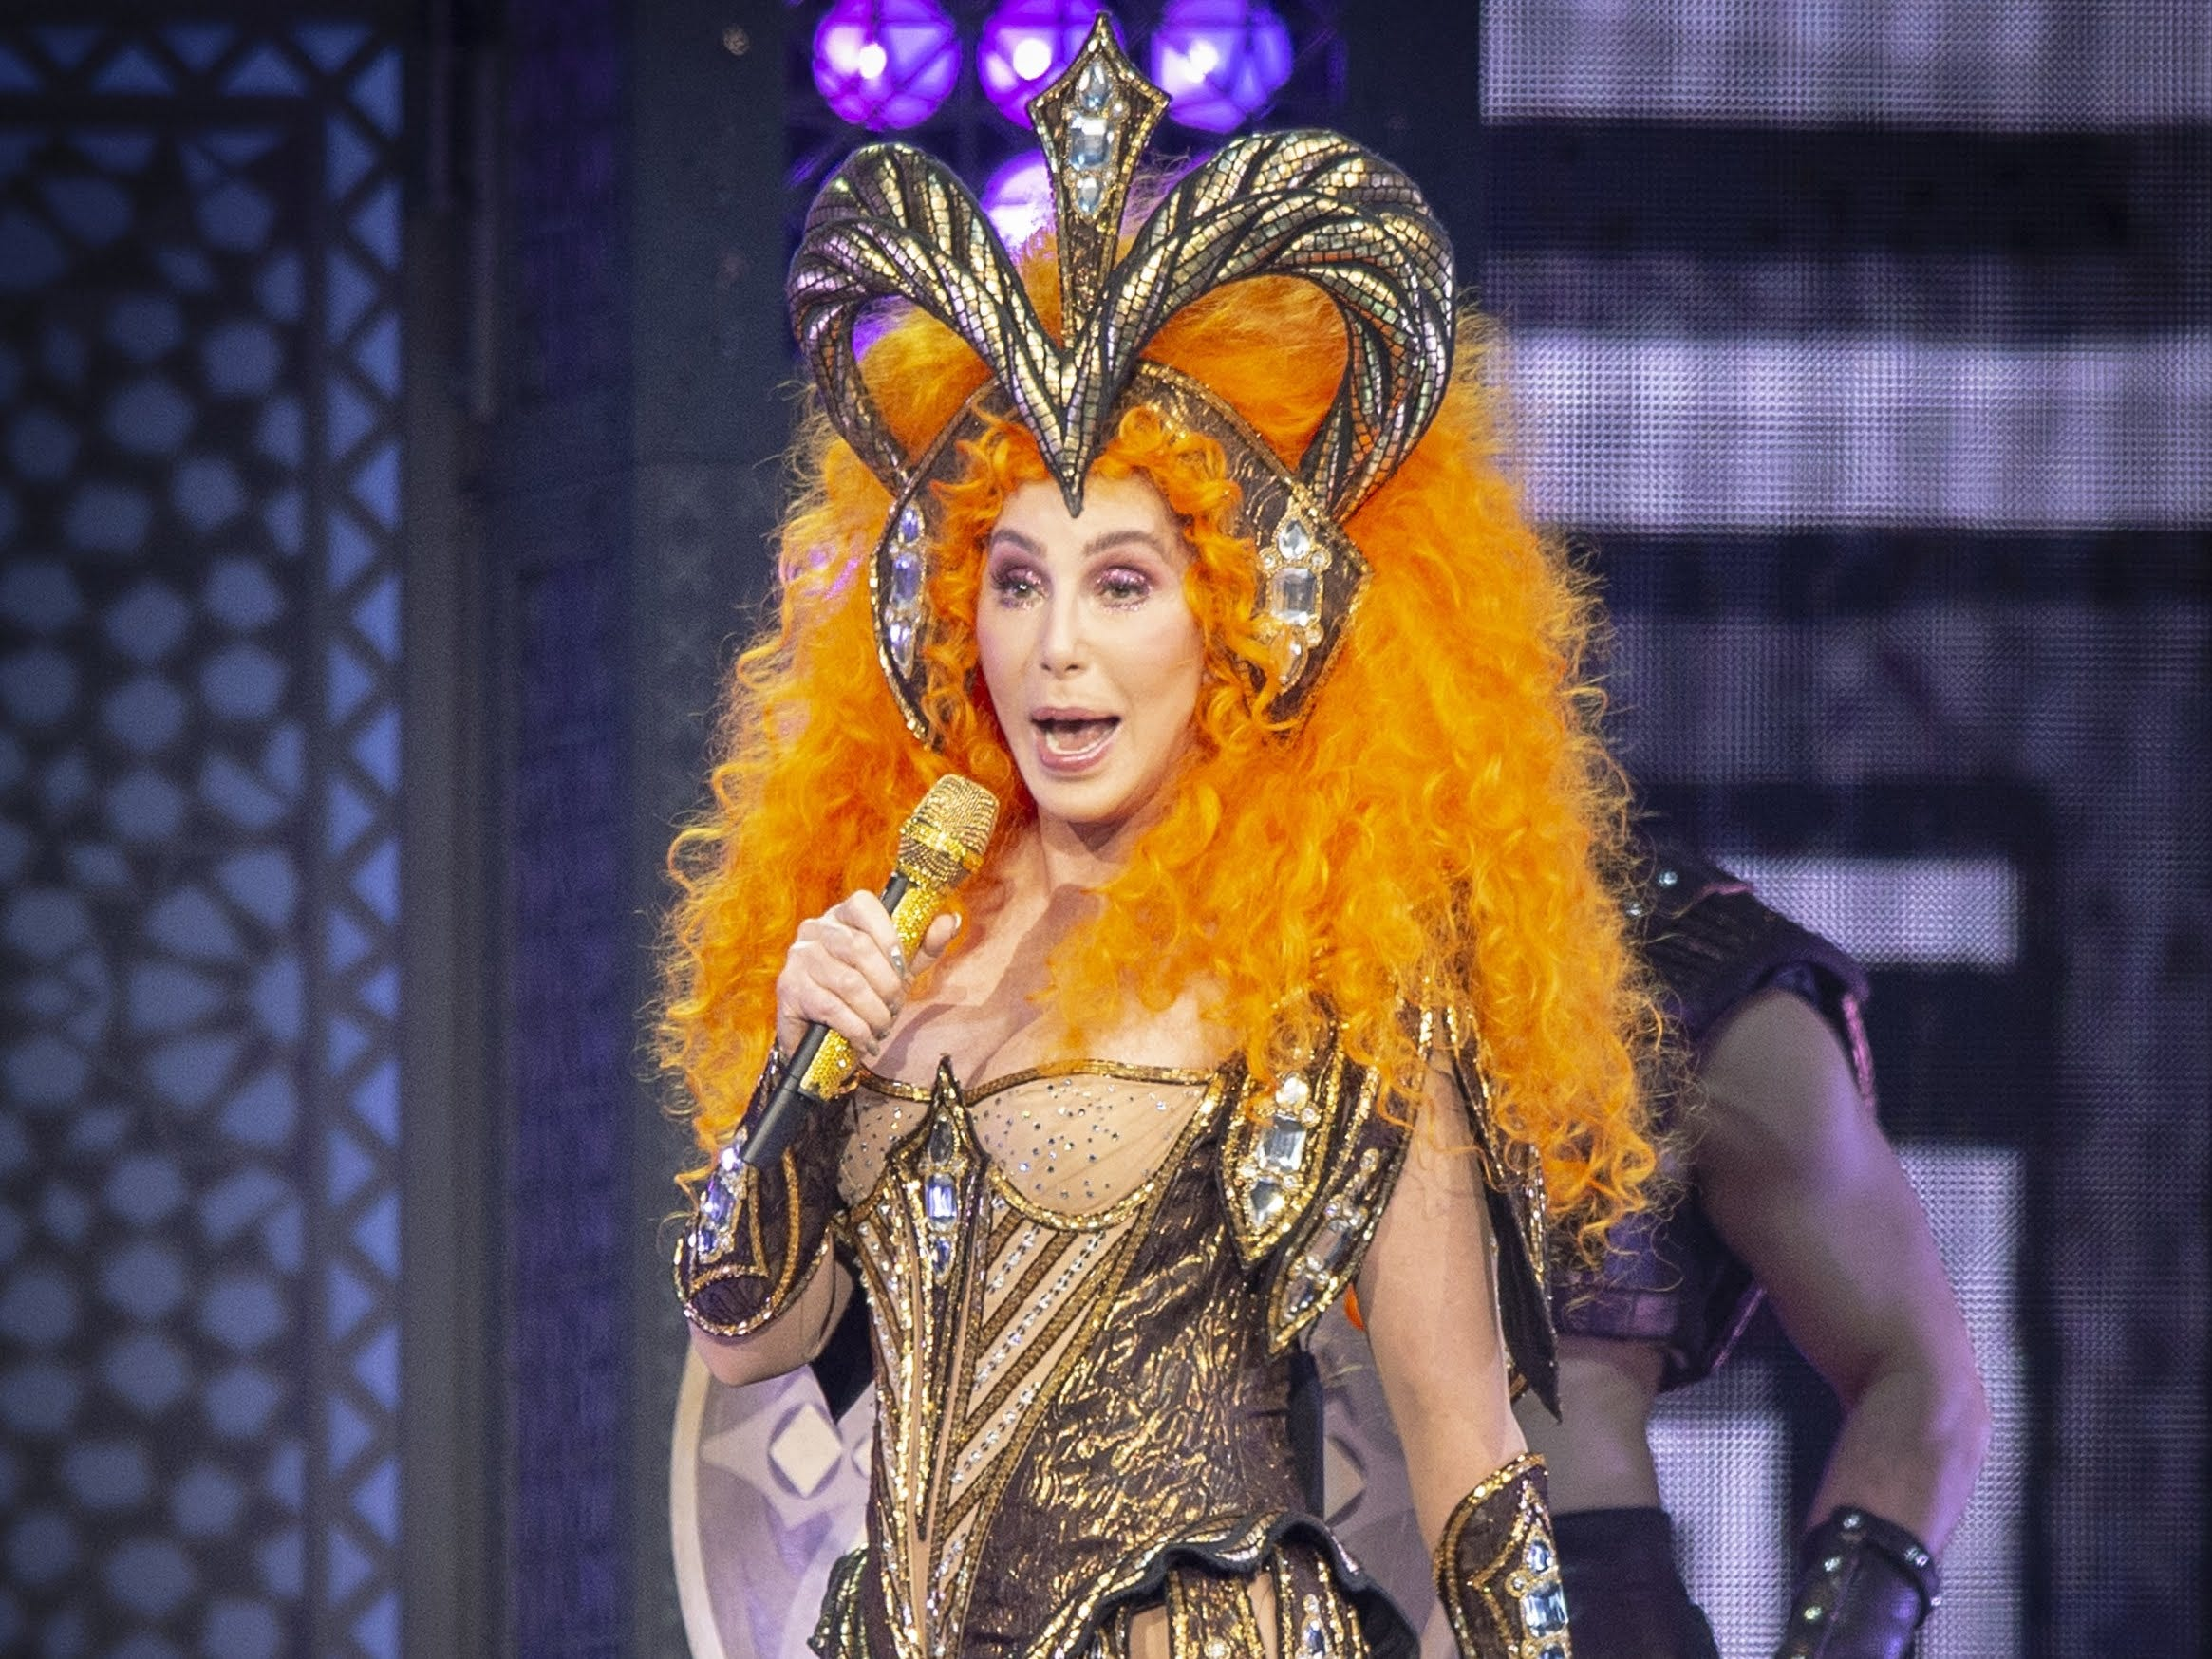 After paint-by-numbers nostalgia trip, Cher finally turns back time in Indianapolis